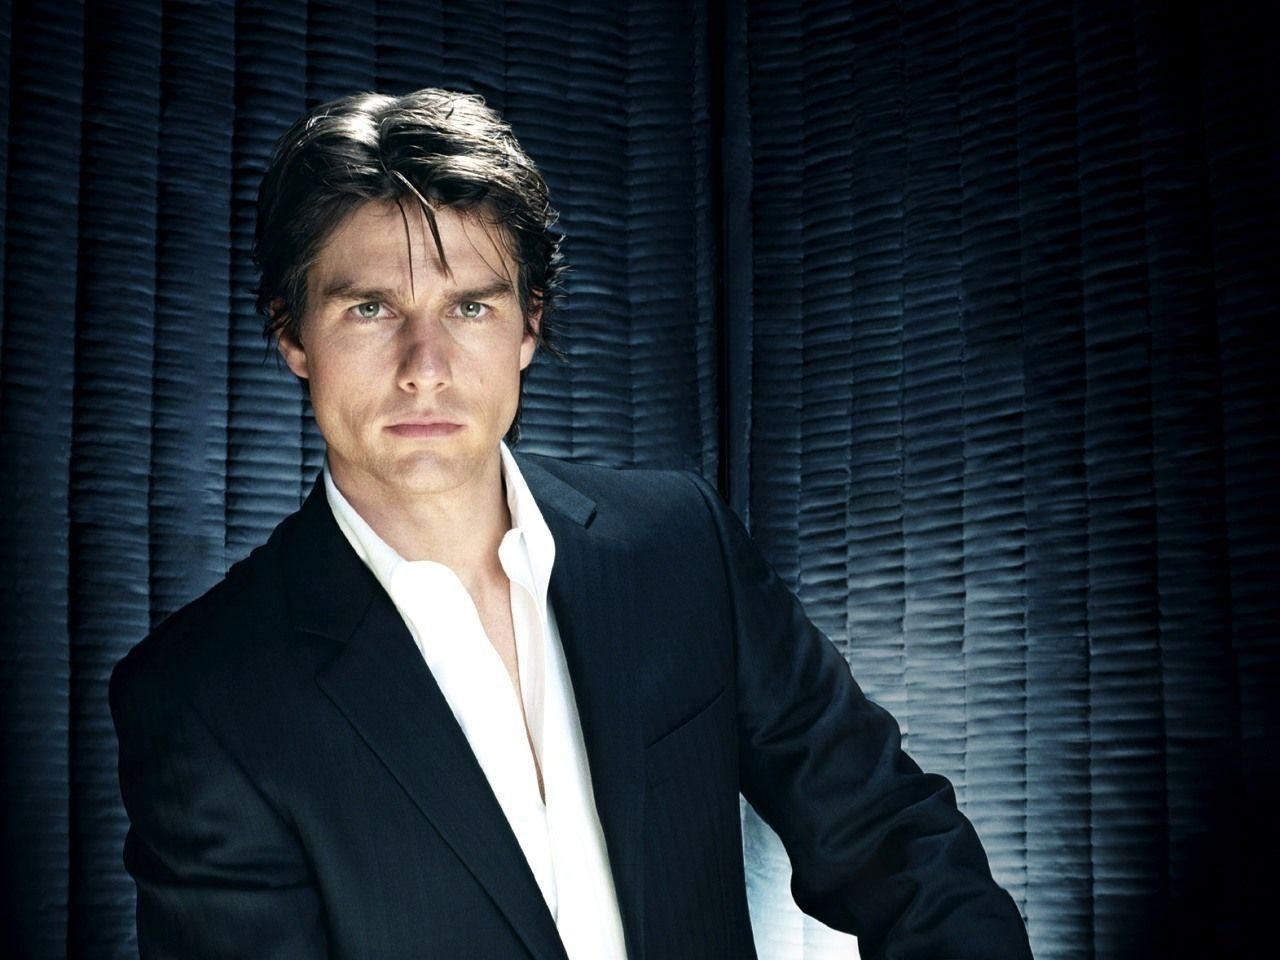 Tom Cruise Wallpapers 1280x960